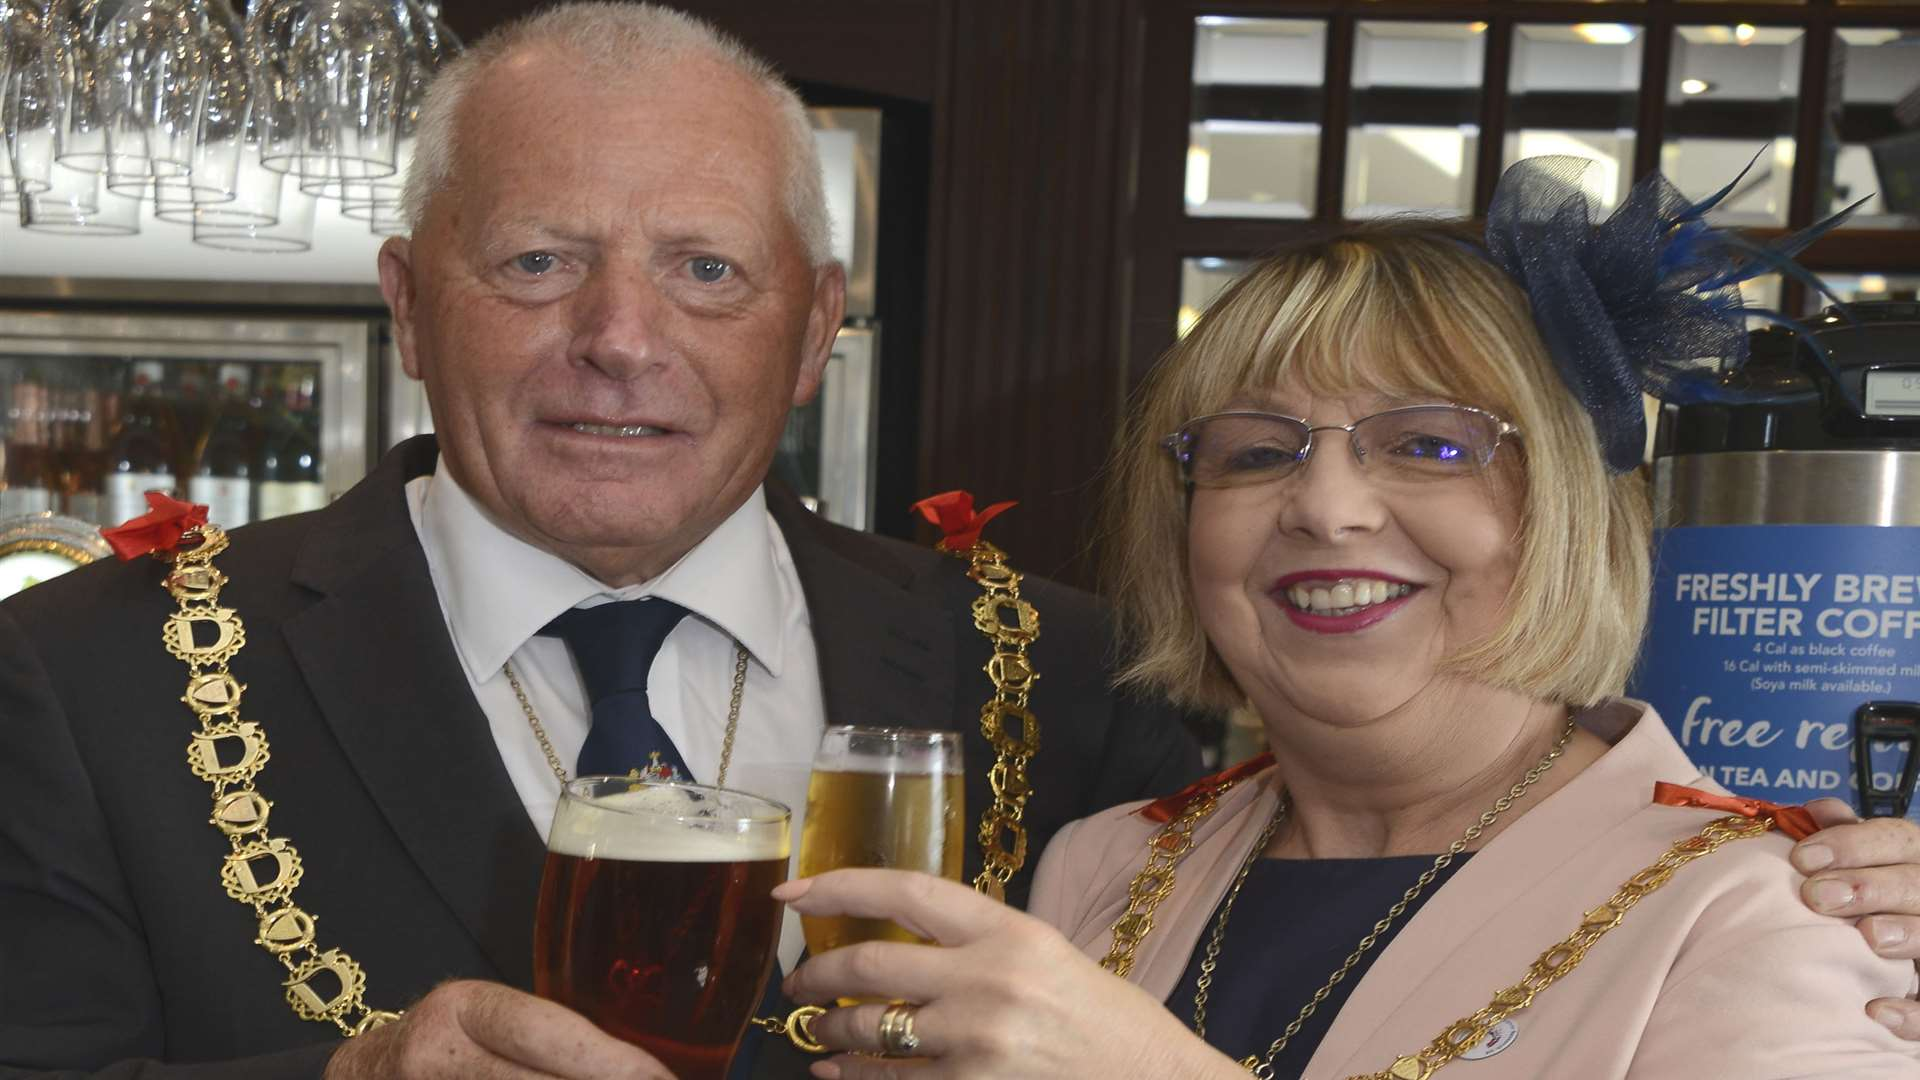 Mayor Cllr Trevor Shonk and Mayoress Mandy Shonk enjoy a drink in the new bar Picture: Paul Amos